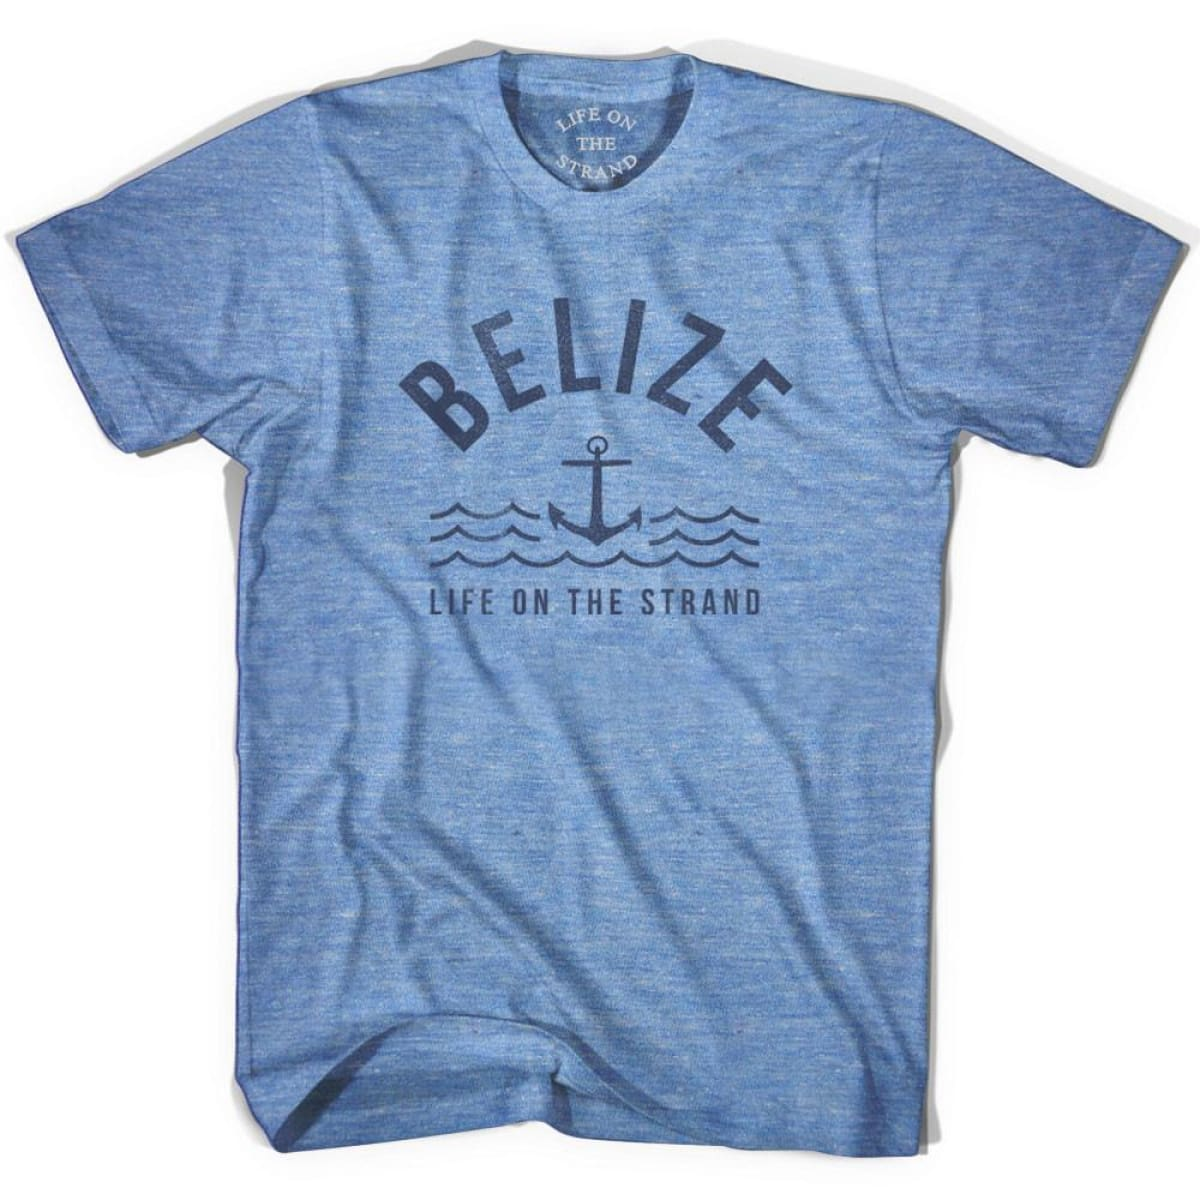 Belize Anchor Life on the Strand T-shirt - Athletic Blue / Adult X-Small - Life on the Strand Anchor